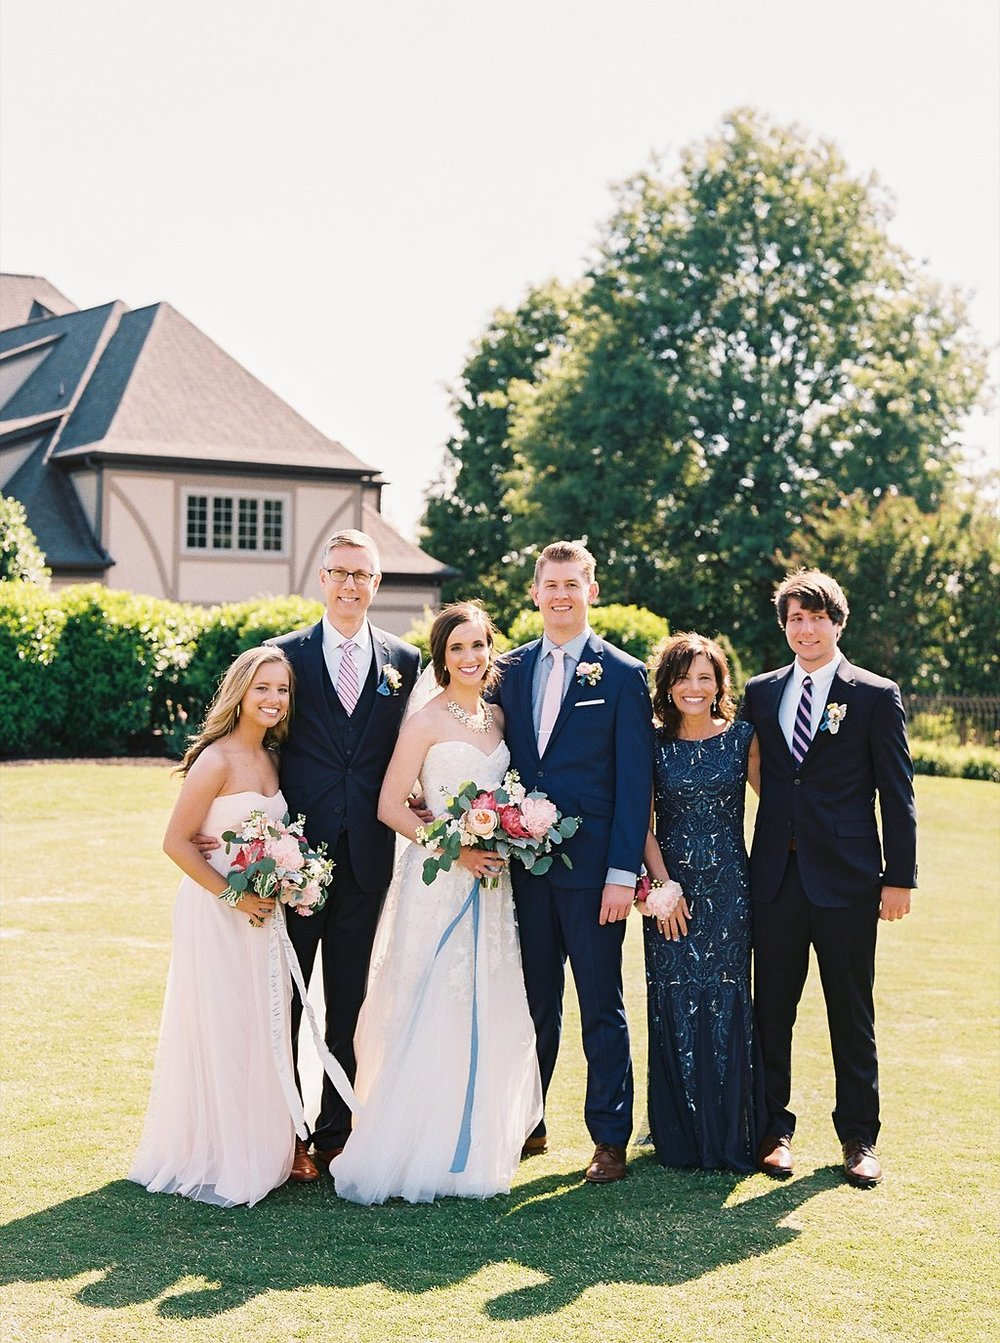 Bride Family Portrait | Blush and Navy Wedding with Fuchsia, French Blue and Gold Accents | Simply Jessica Marie's Southern Wedding | Photo by Perry Vaile Photography